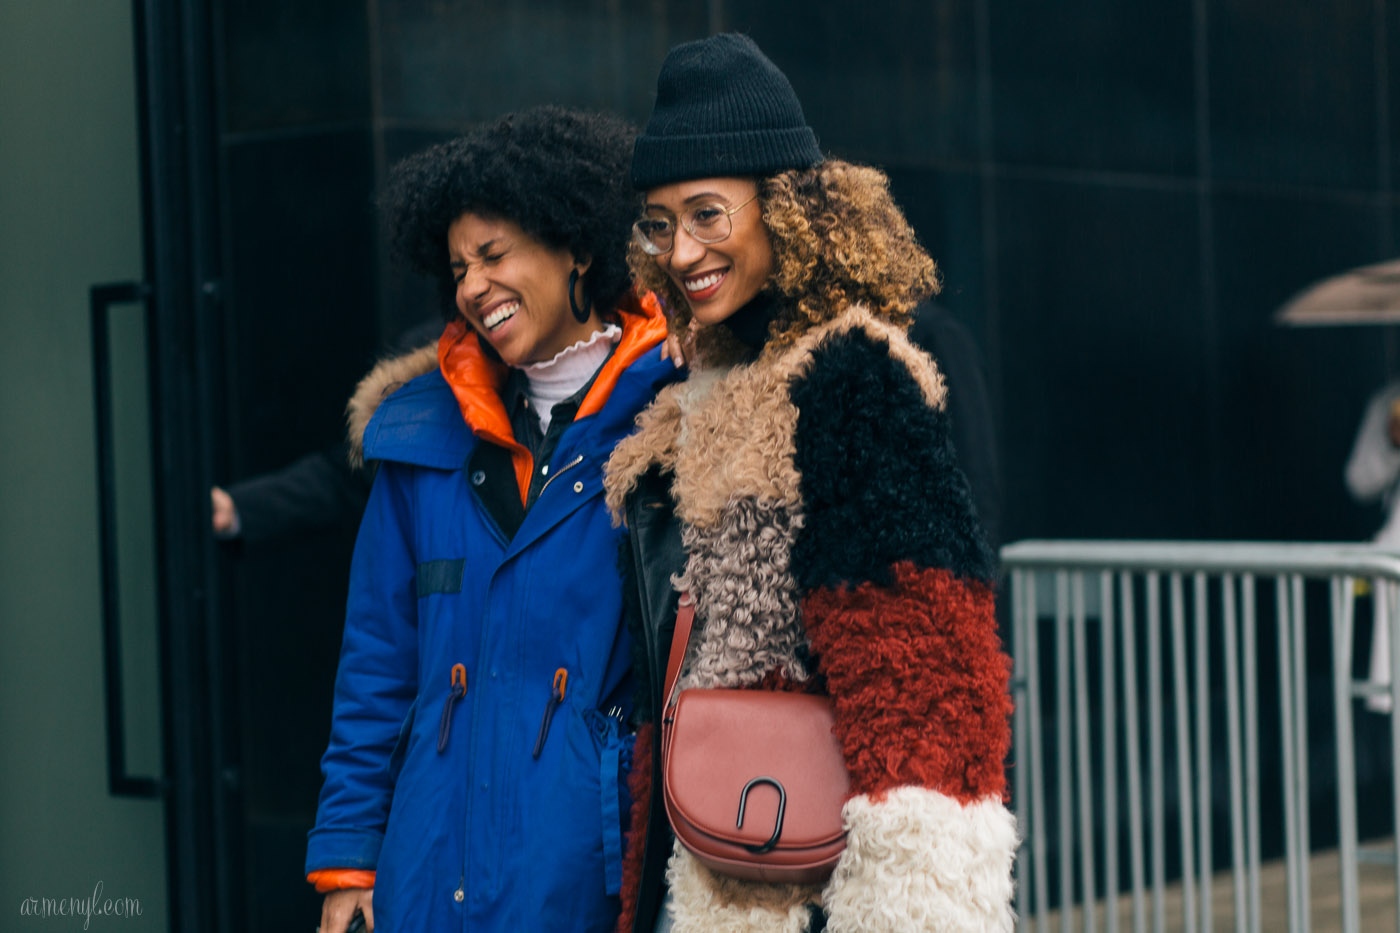 Teen Vogues Elaine Welteroth at New York Fashion Week photo by Armenyl.com